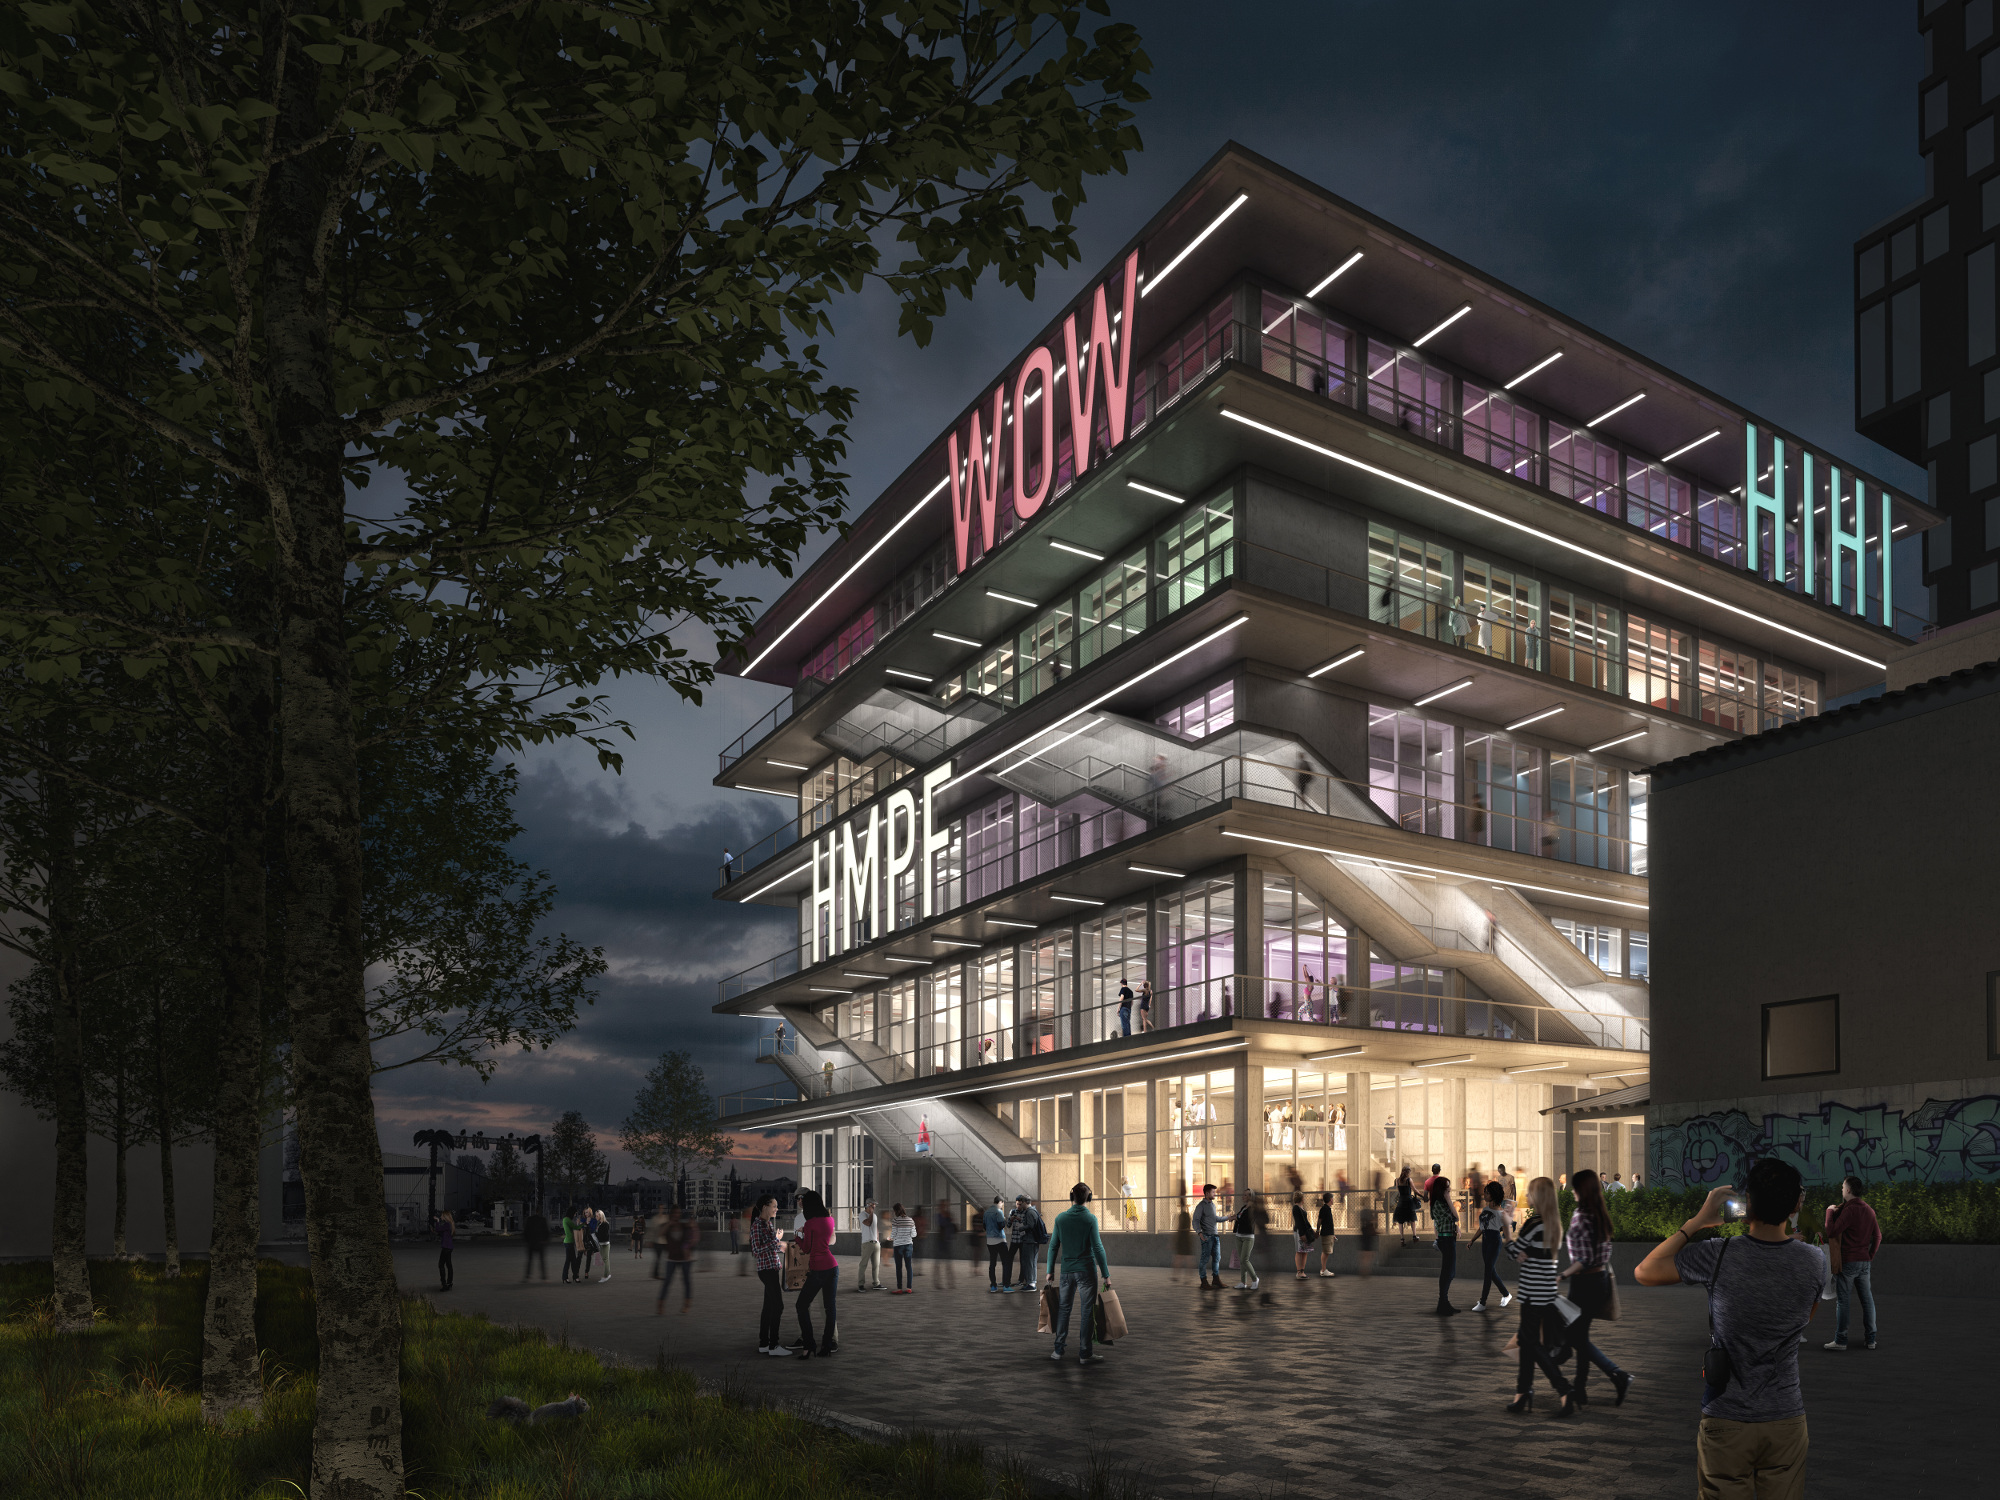 WERK12 will feature illuminated exclamations on the front of the building.